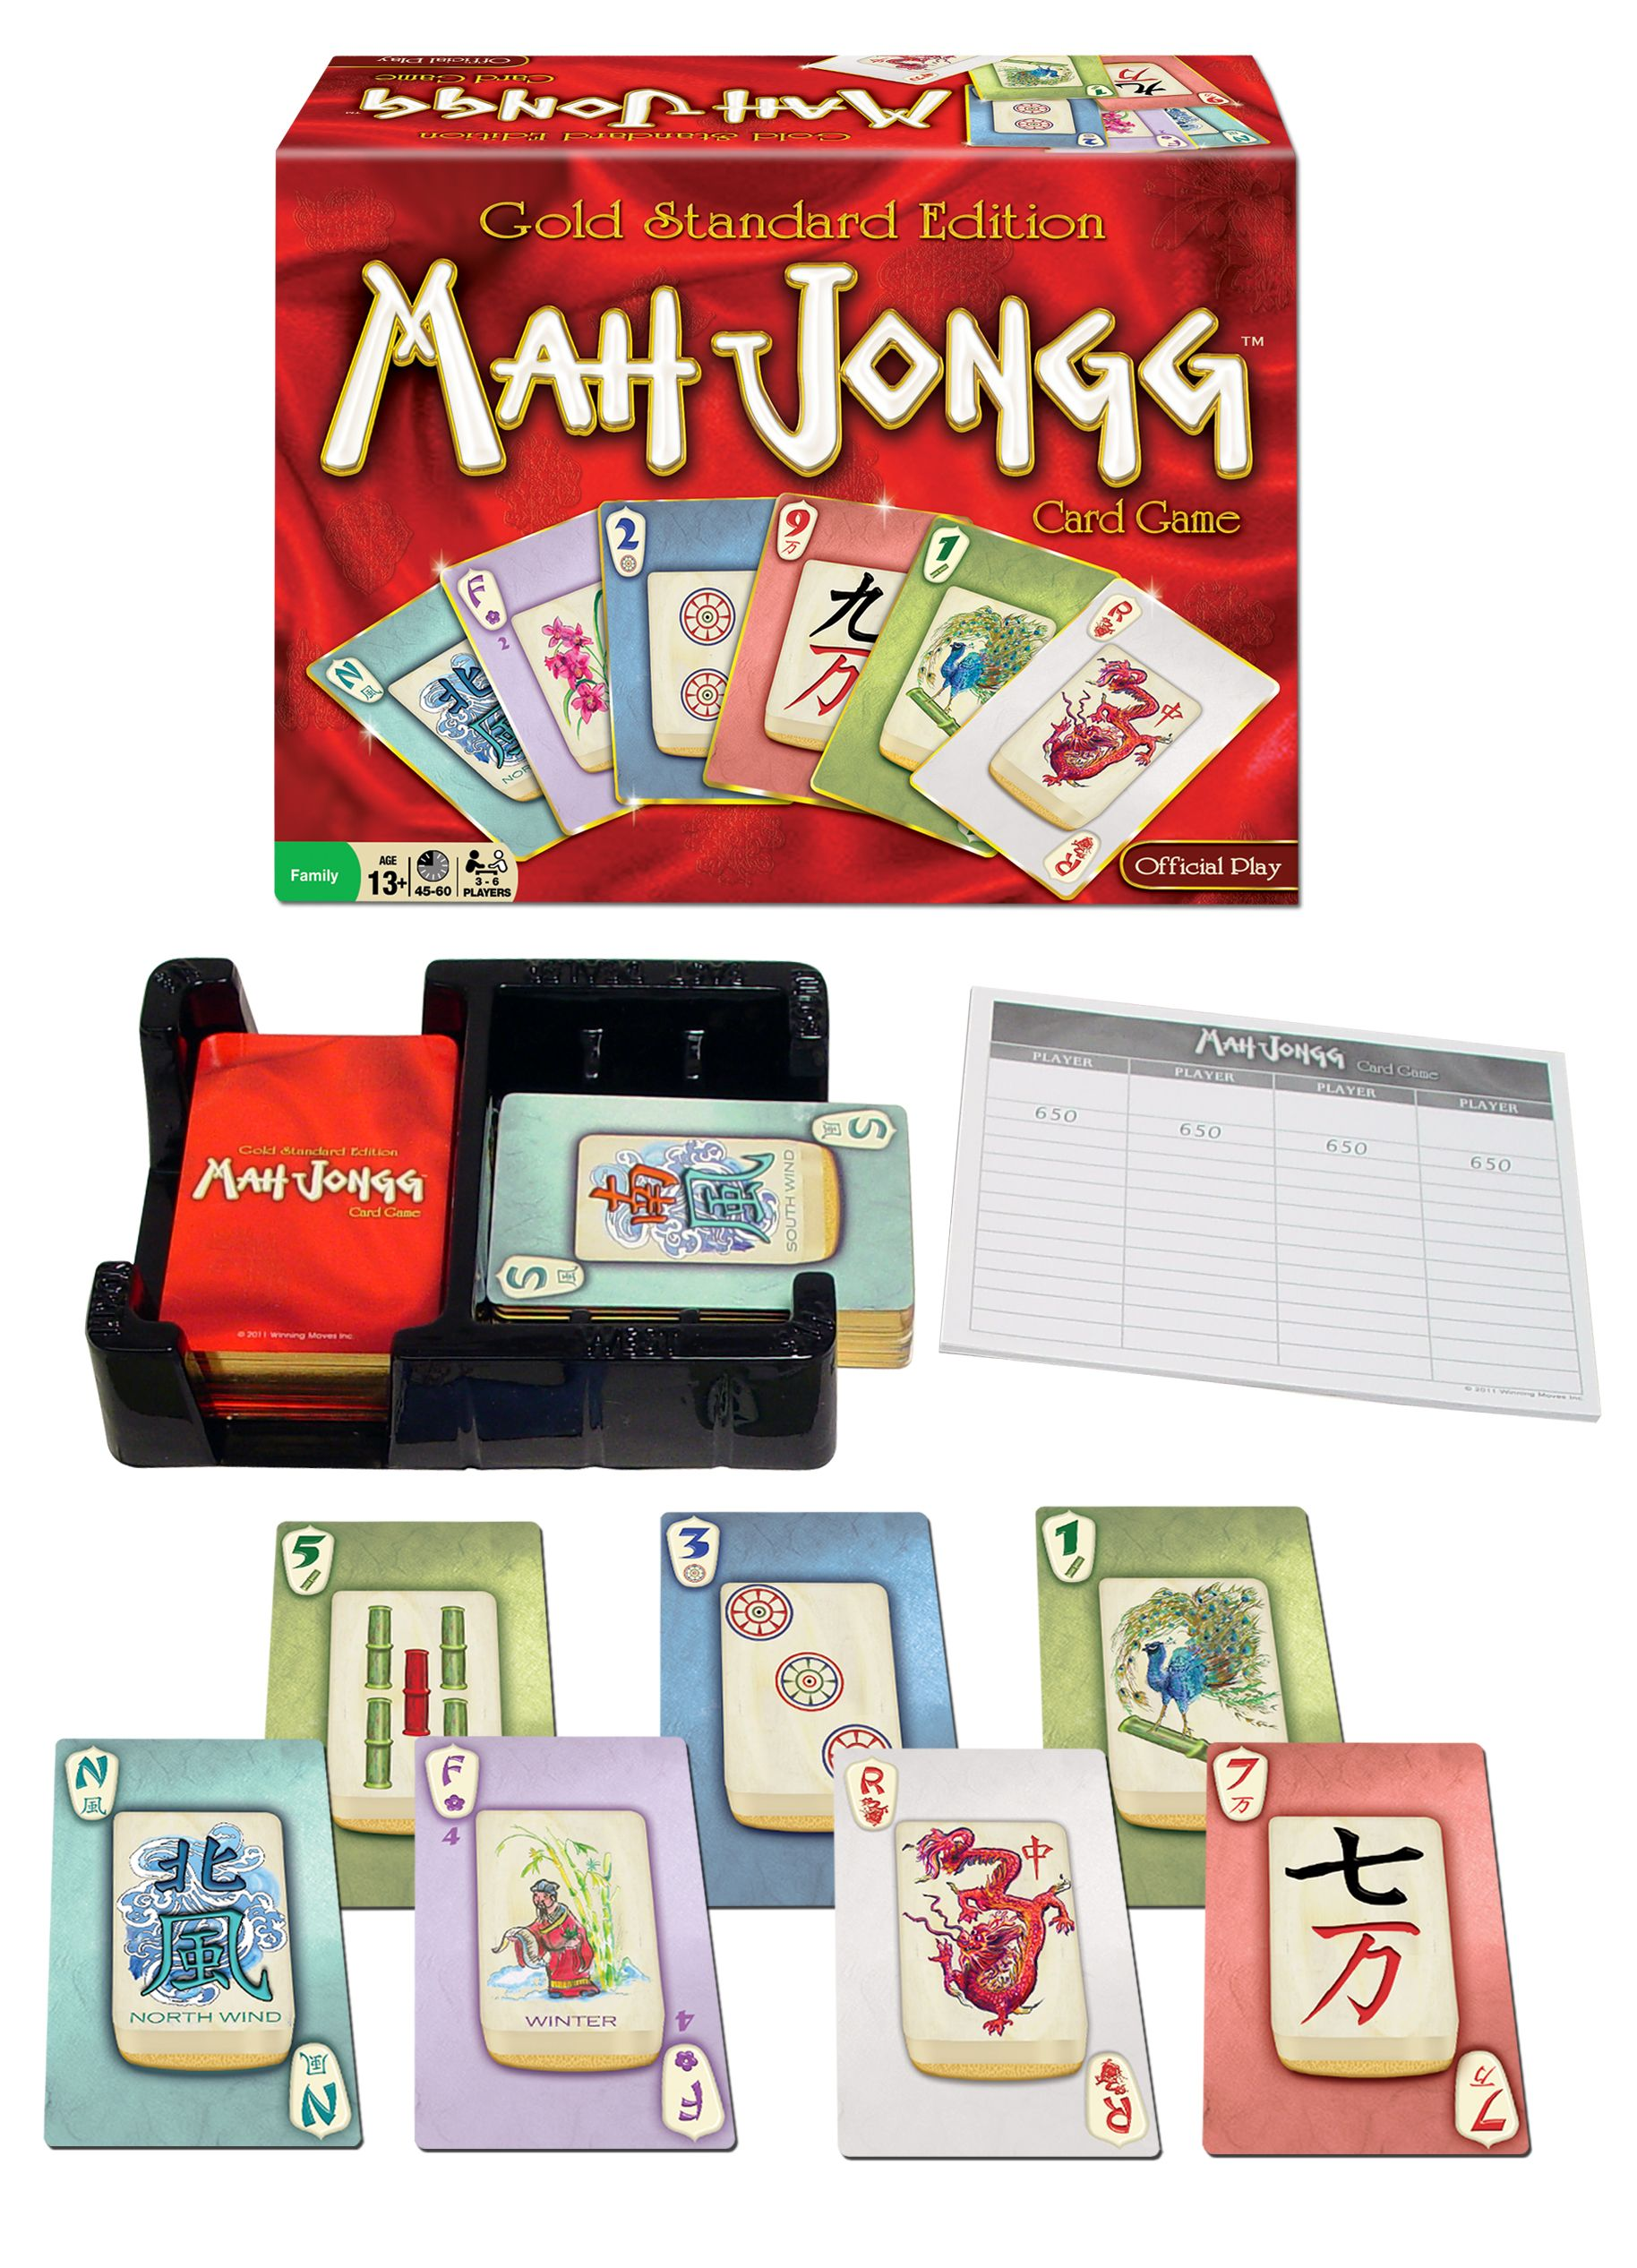 Mah Jongg Card Game by Winning Moves features beautifully